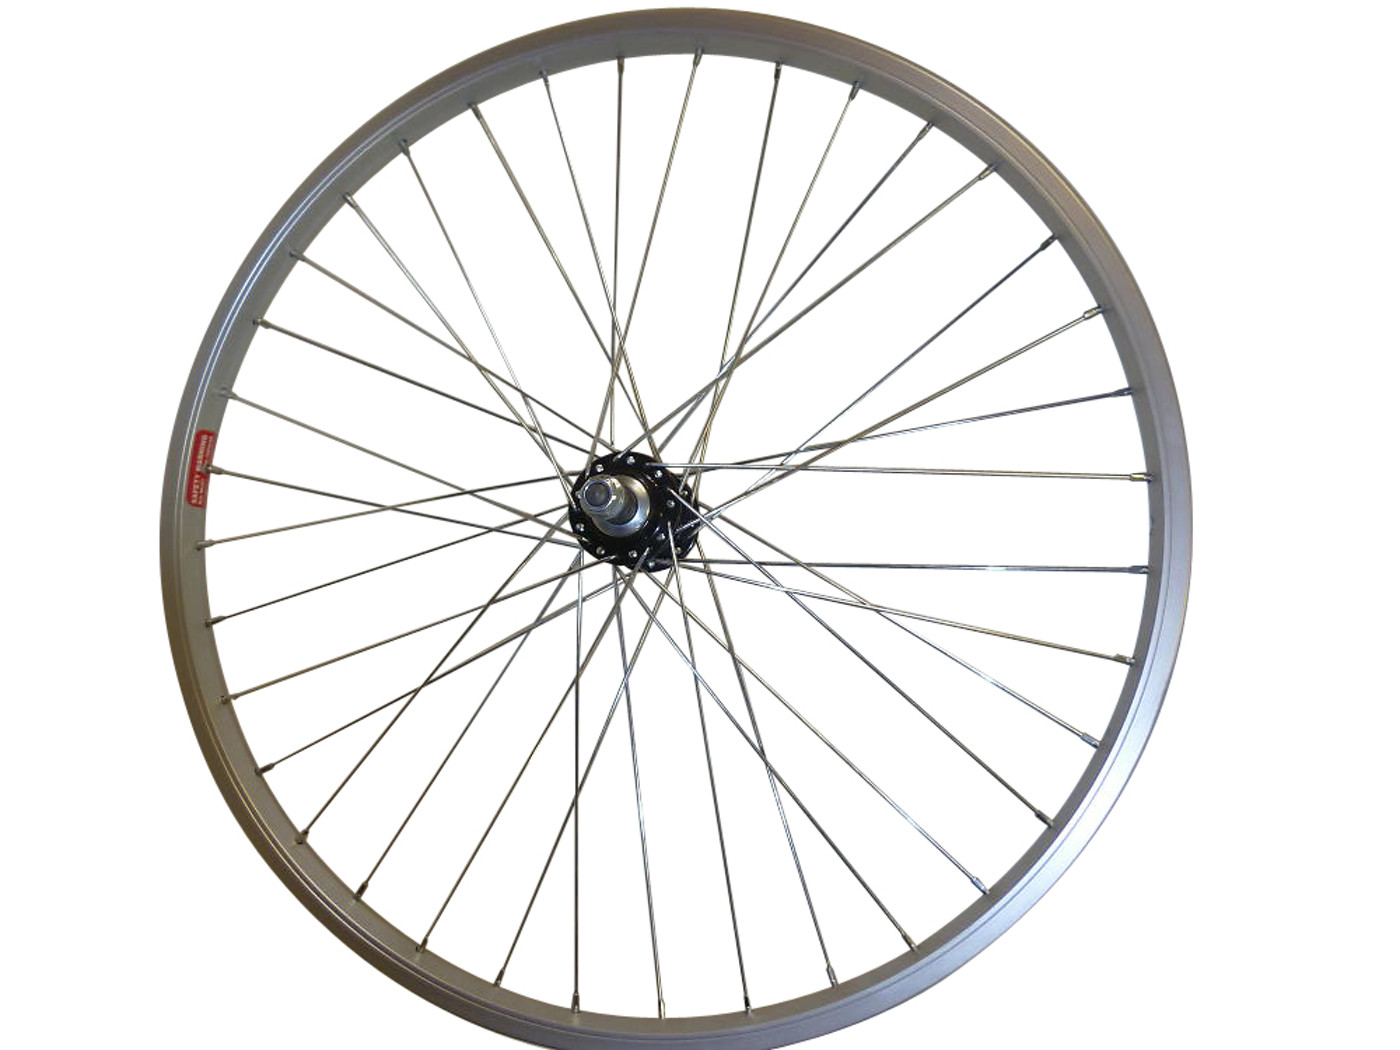 "HIGH COLORADO Felge 24"" VORNE"